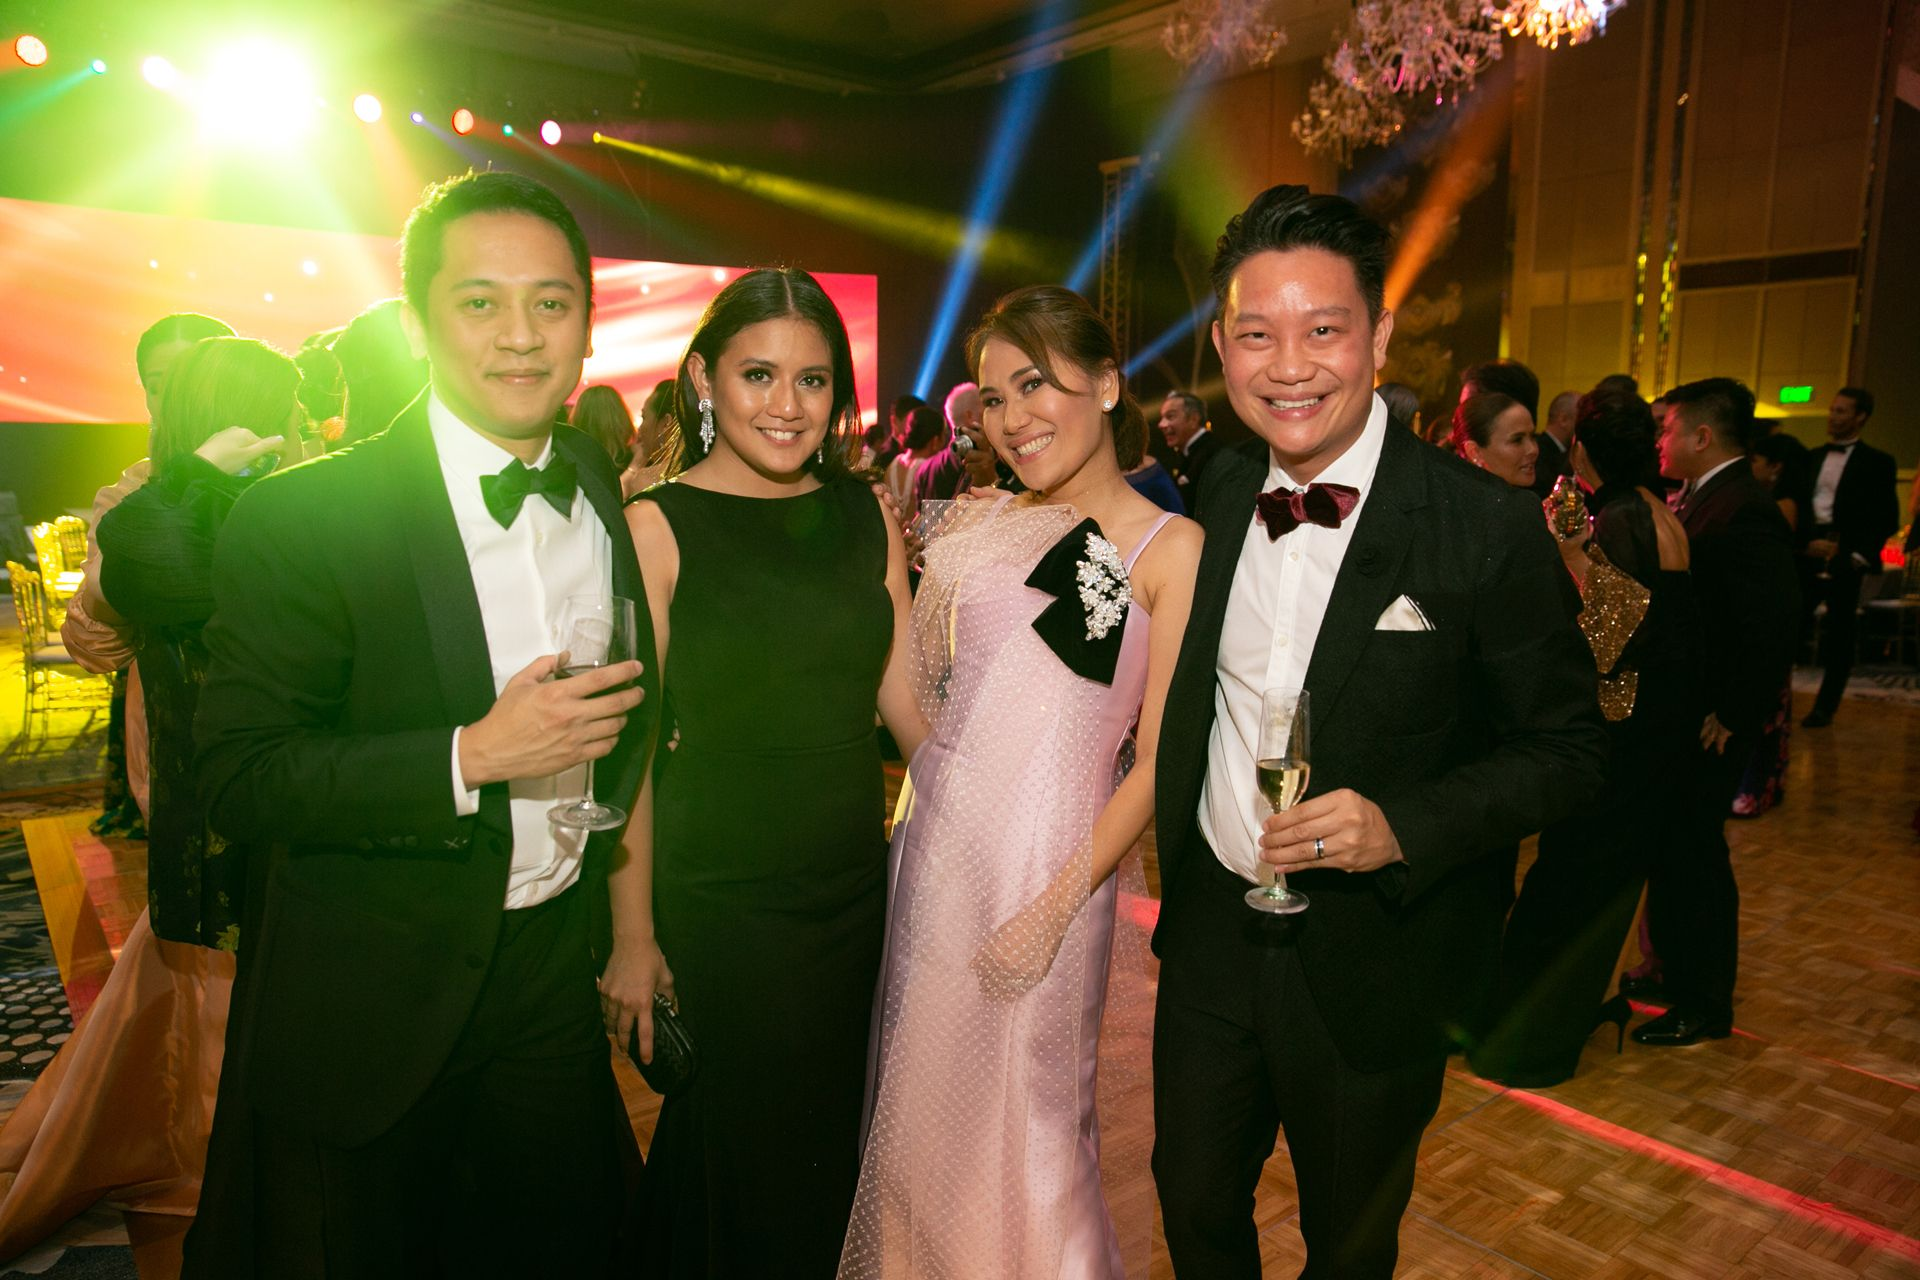 Erwin and Camille Genuino, Aivee and Z Teo